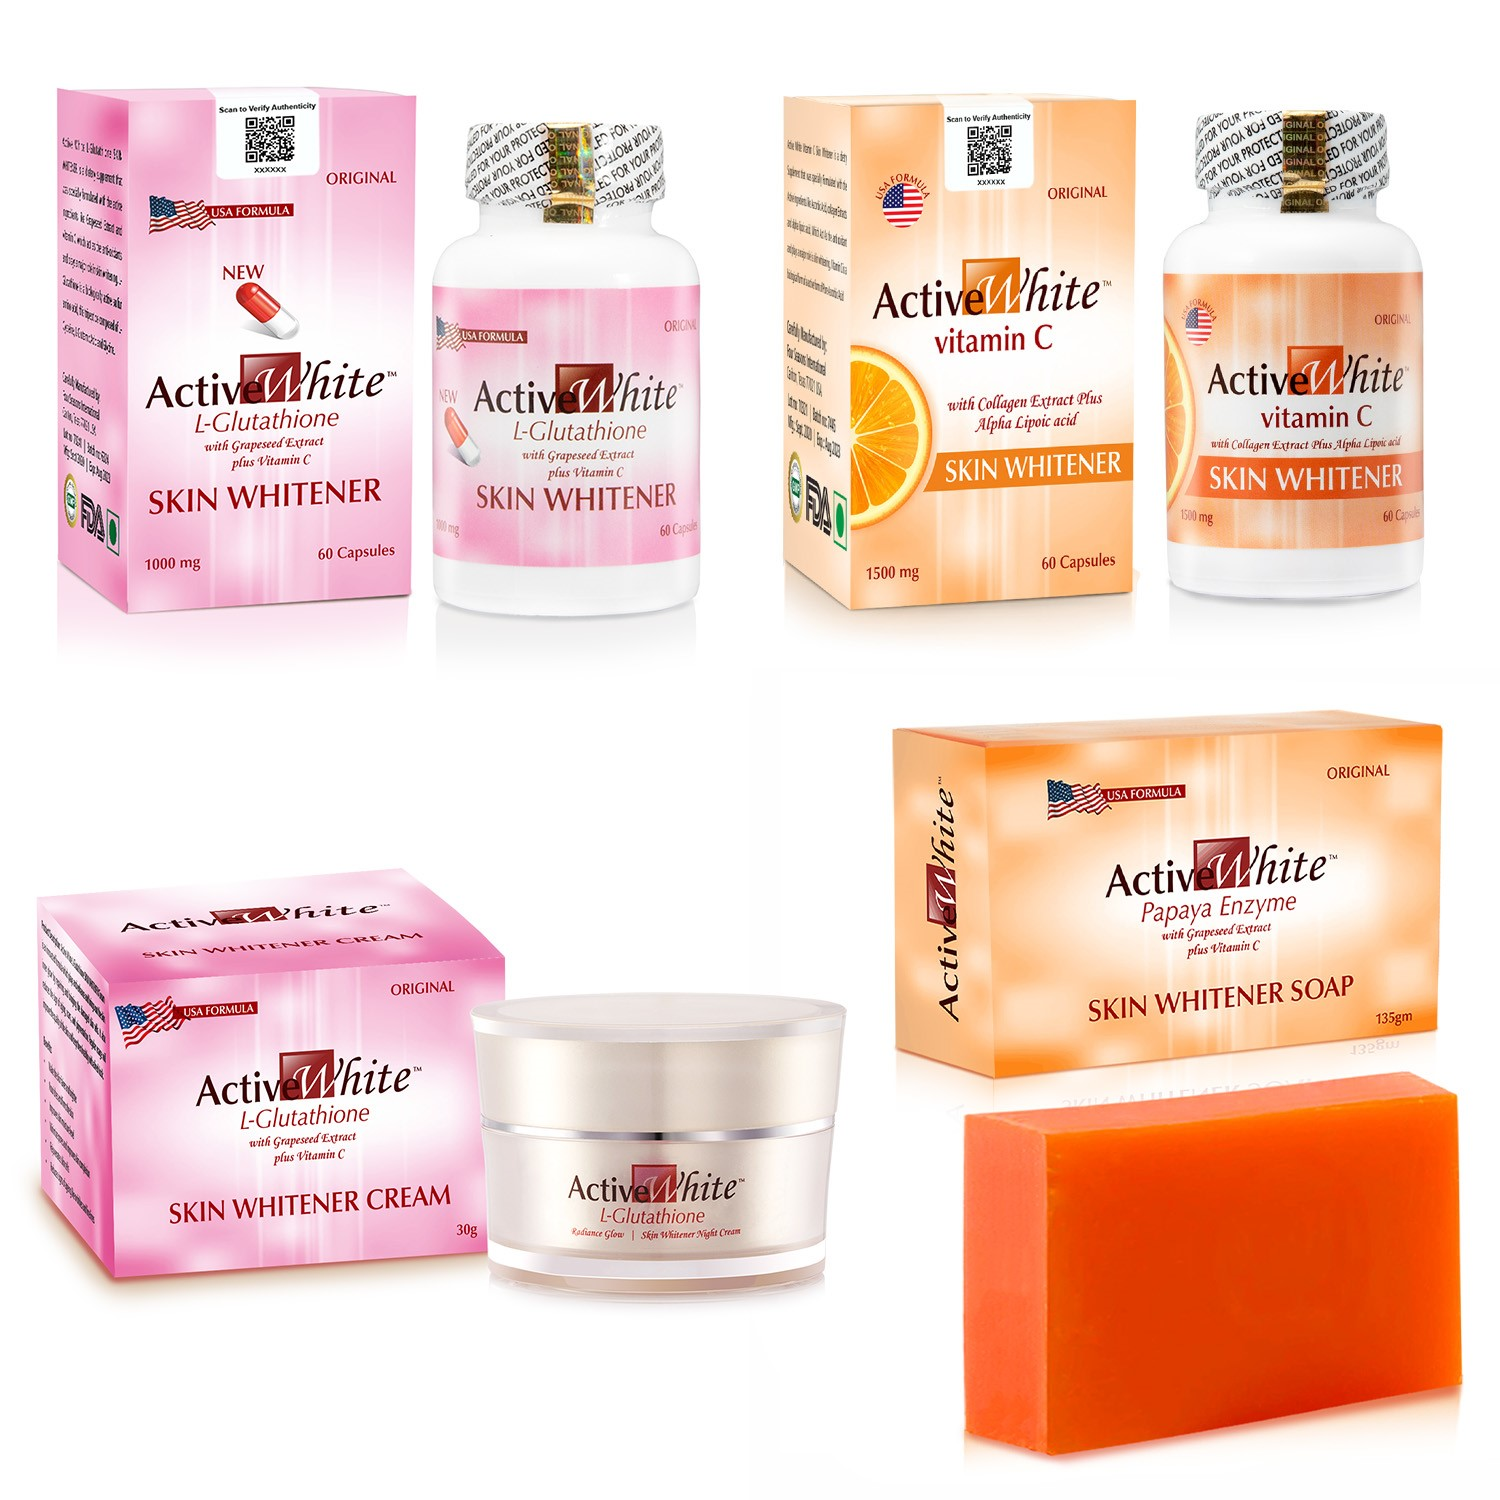 Active White L Glutathione Skin Whitening Cream